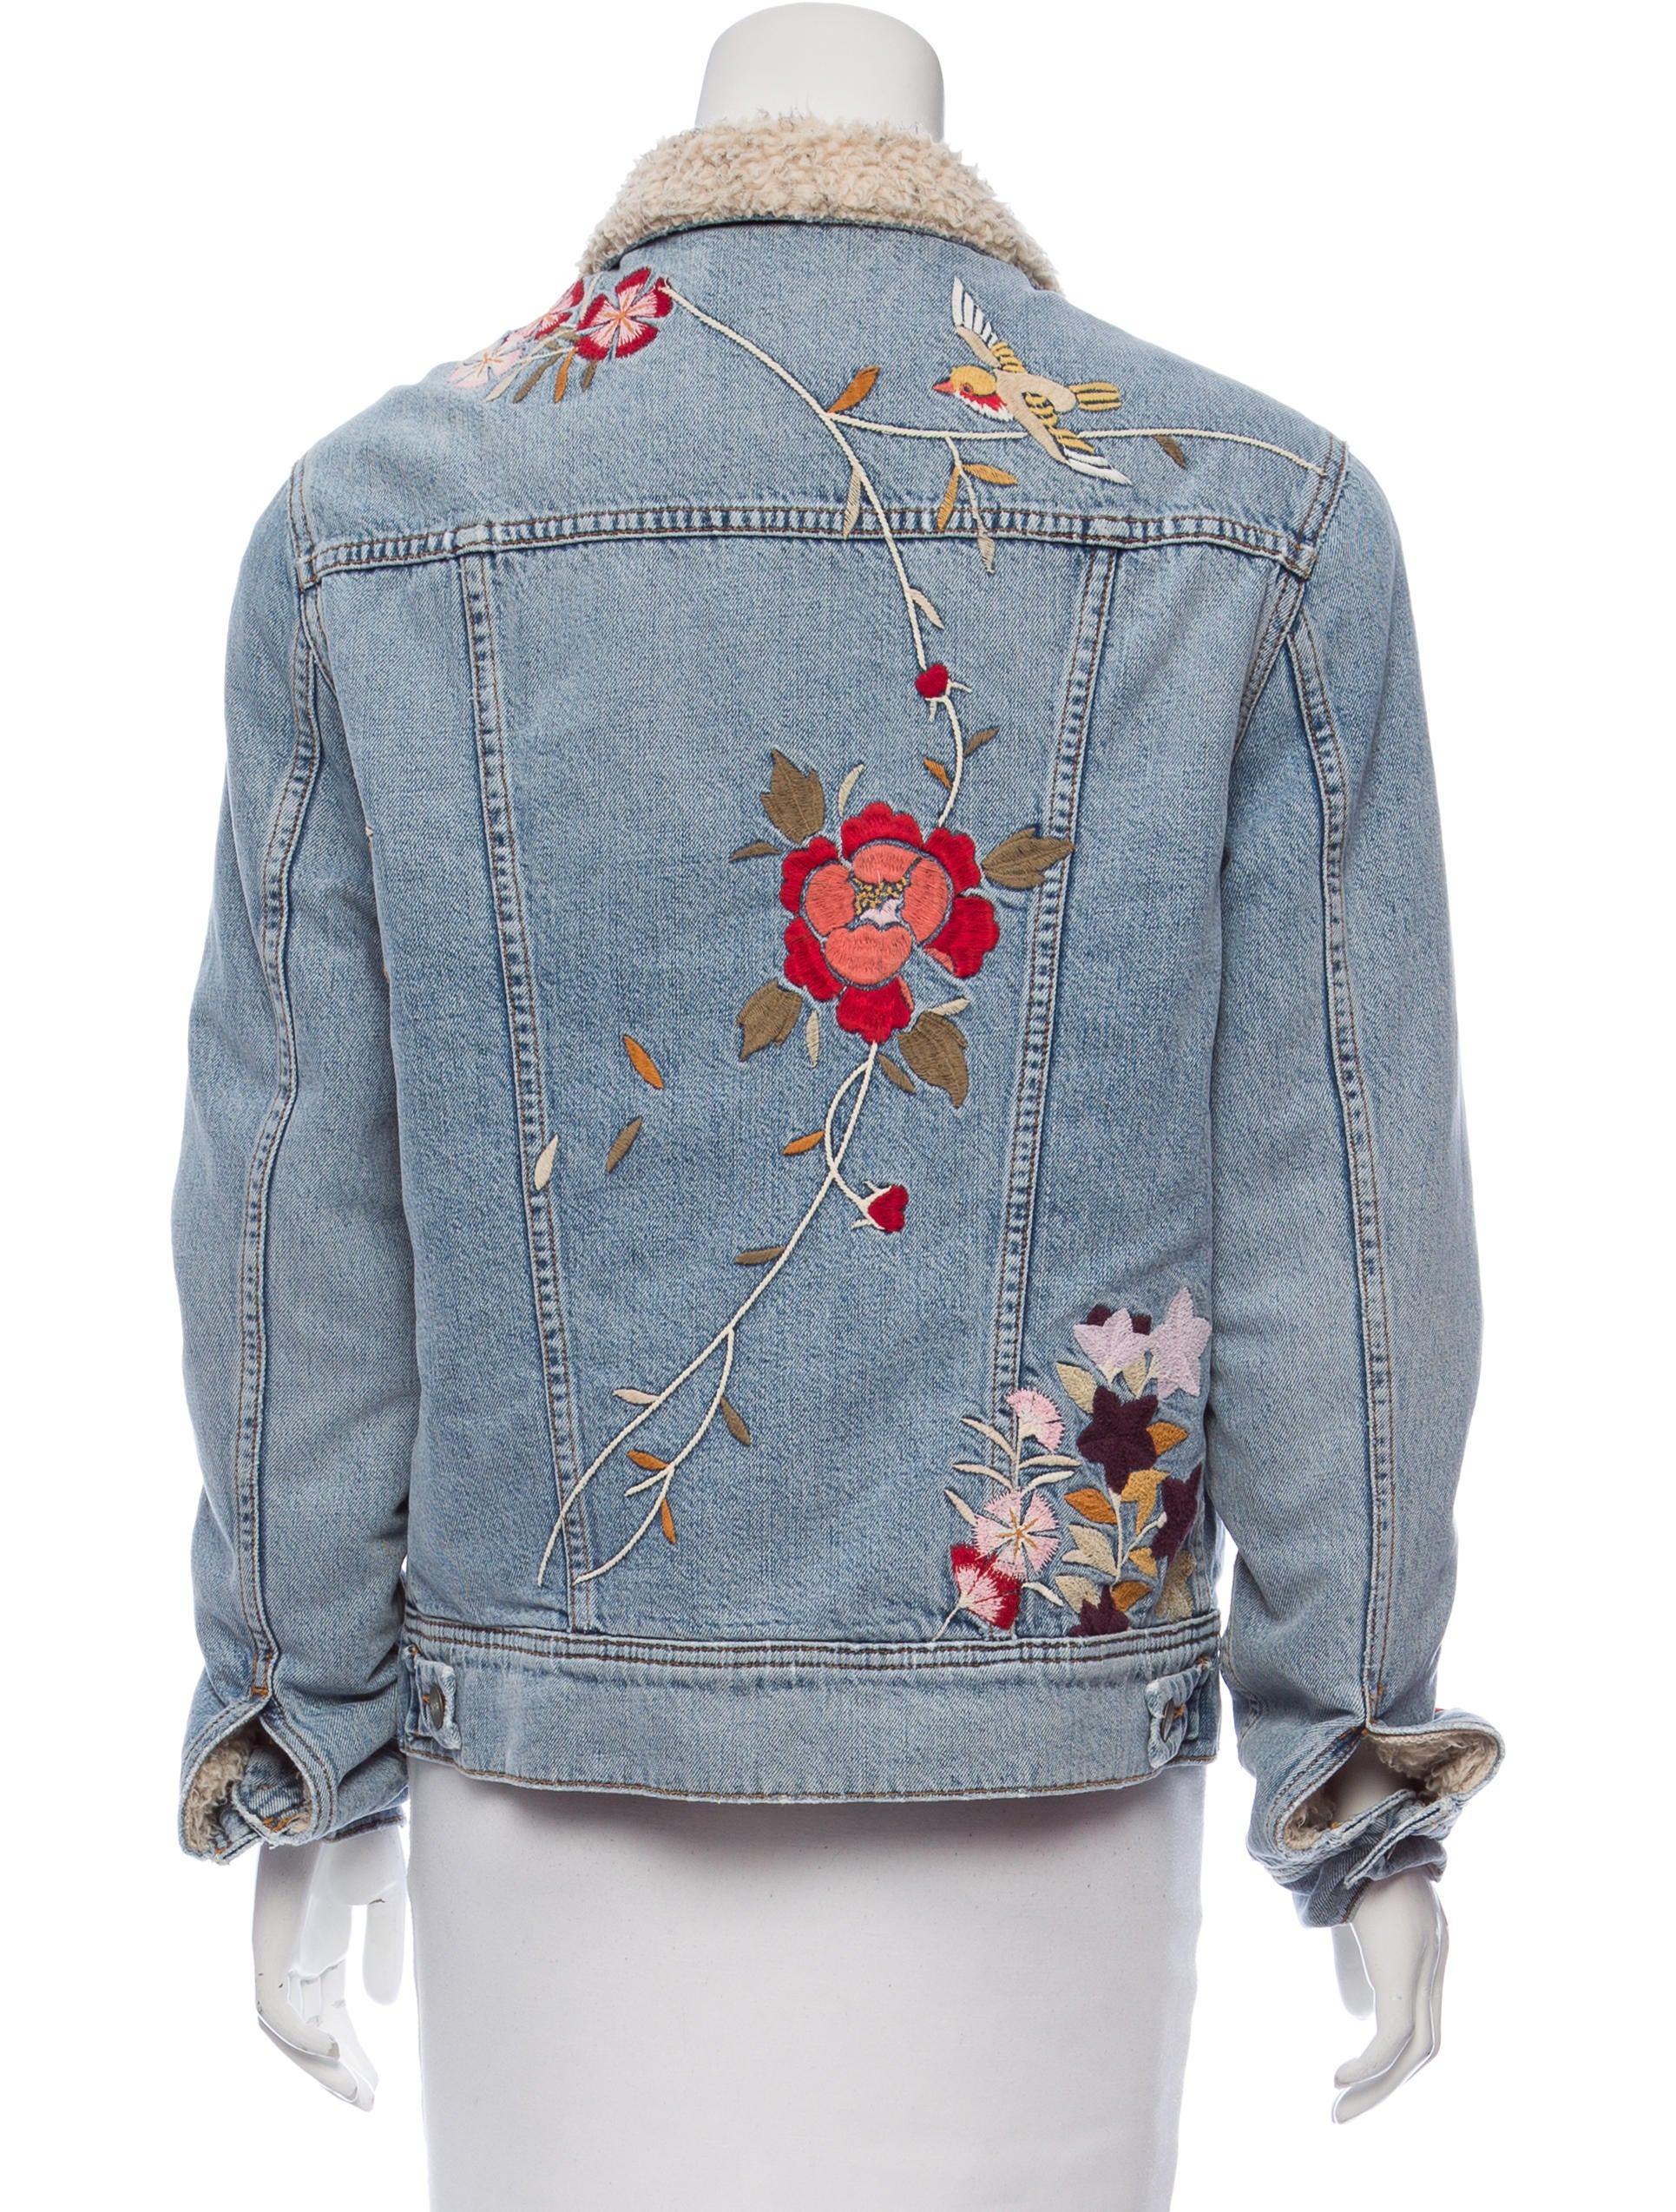 You searched for: embroidered jacket! Etsy is the home to thousands of handmade, vintage, and one-of-a-kind products and gifts related to your search. No matter what you're looking for or where you are in the world, our global marketplace of sellers can help you .